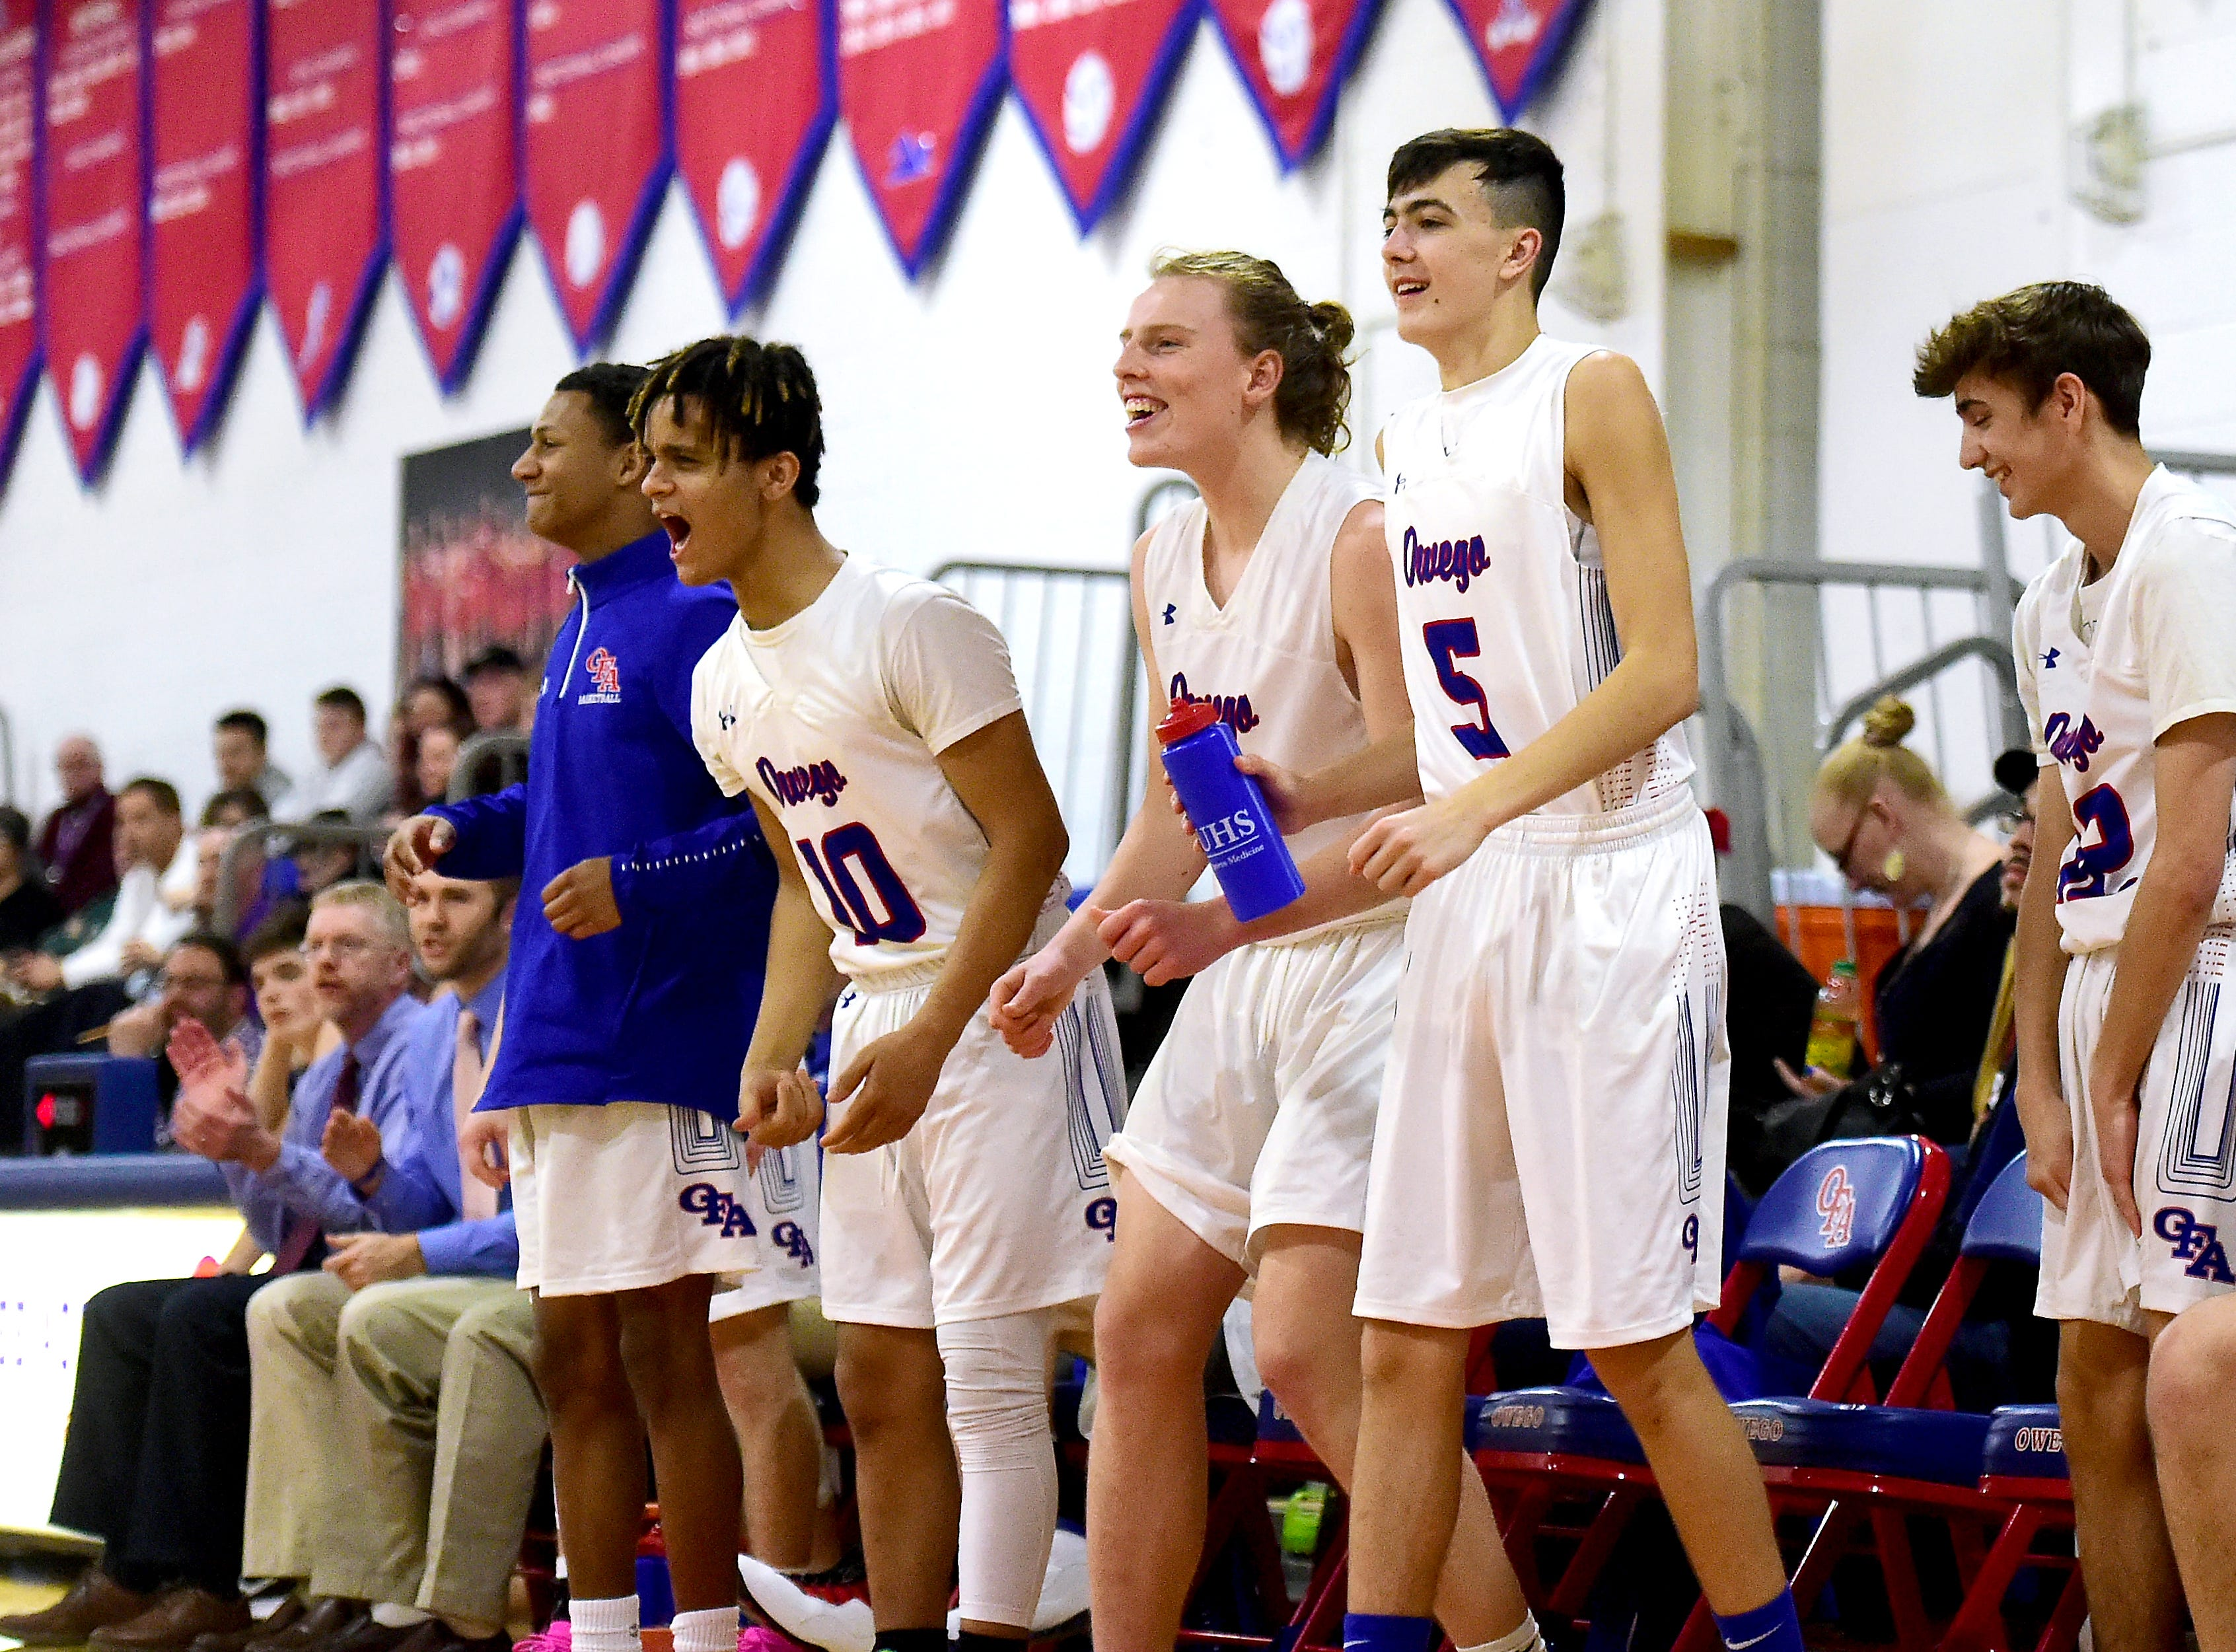 The Owego bench cheers on the team during the second half of Section 4 boys basketball, Class B quarterfinal. Dryden at Owego Free Academy, February 22, 2019.